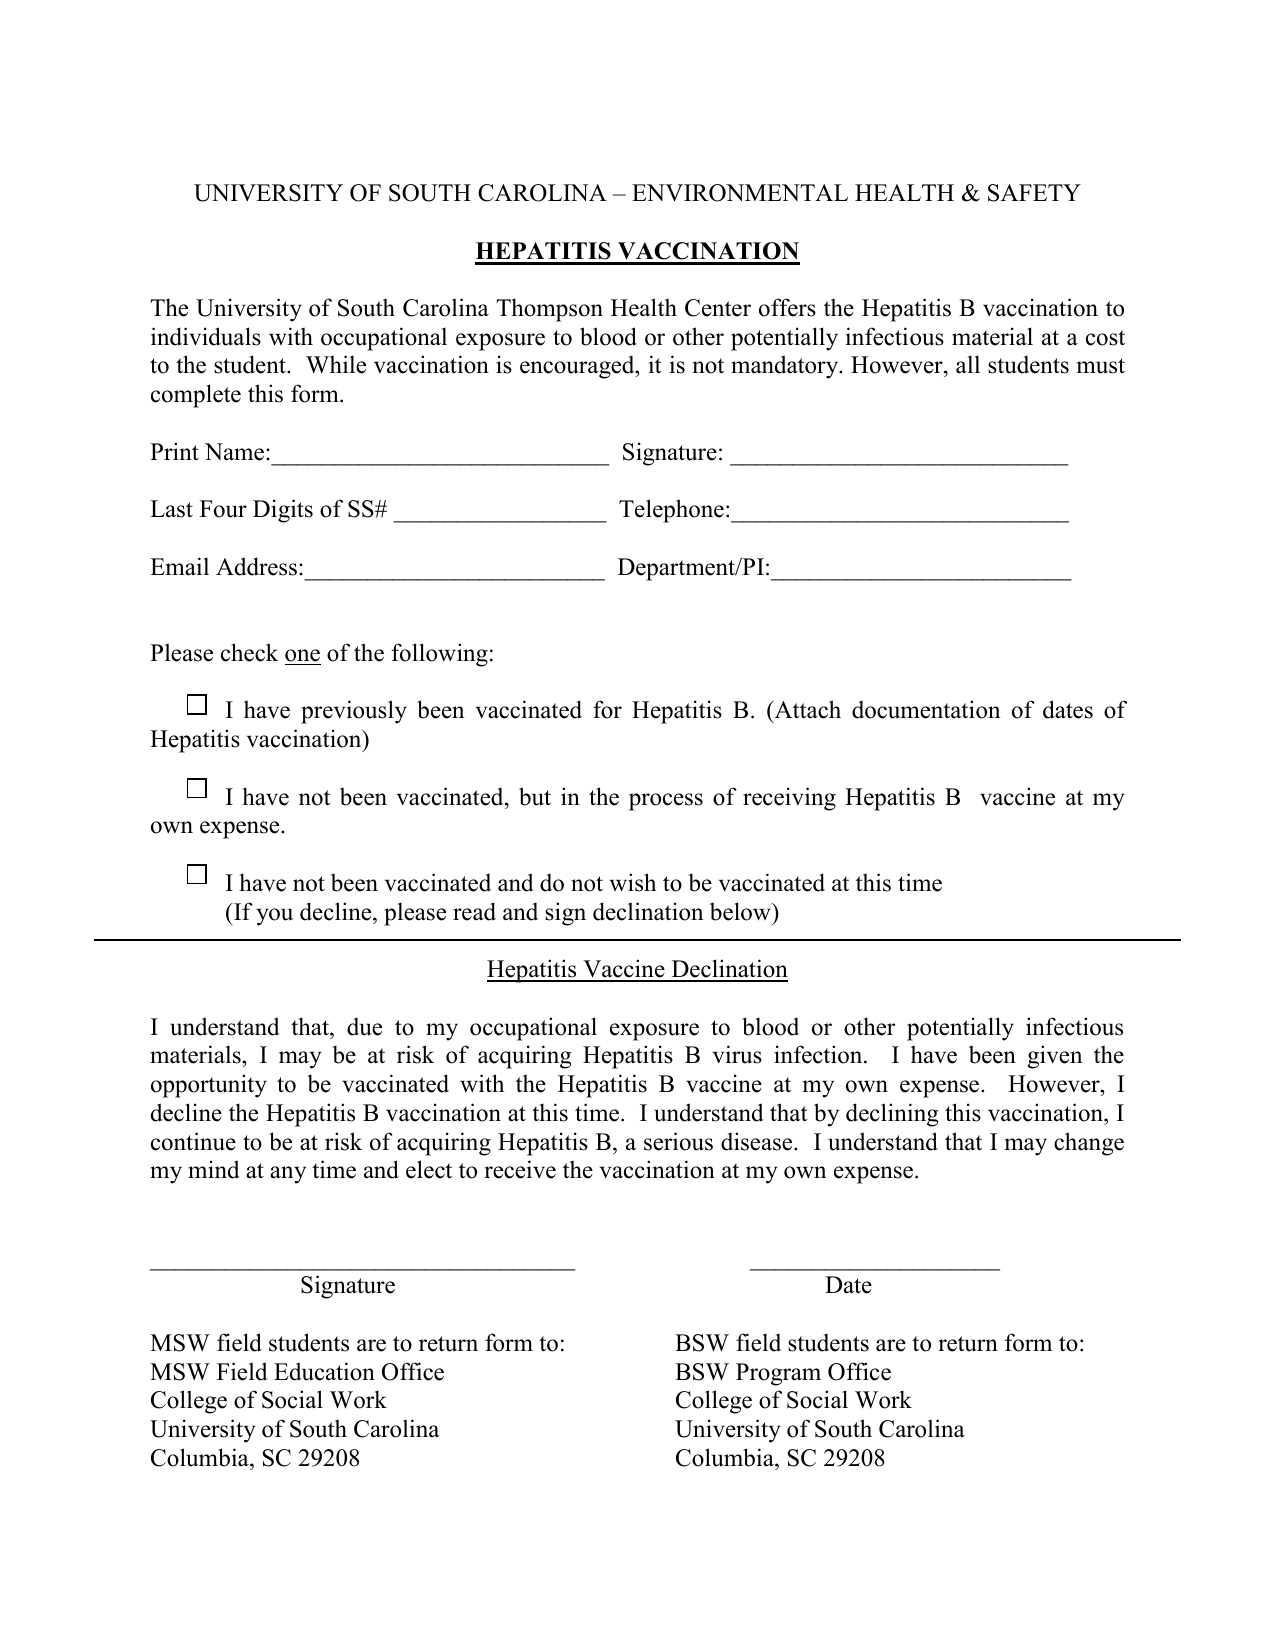 Hep B Vertification and Declination form